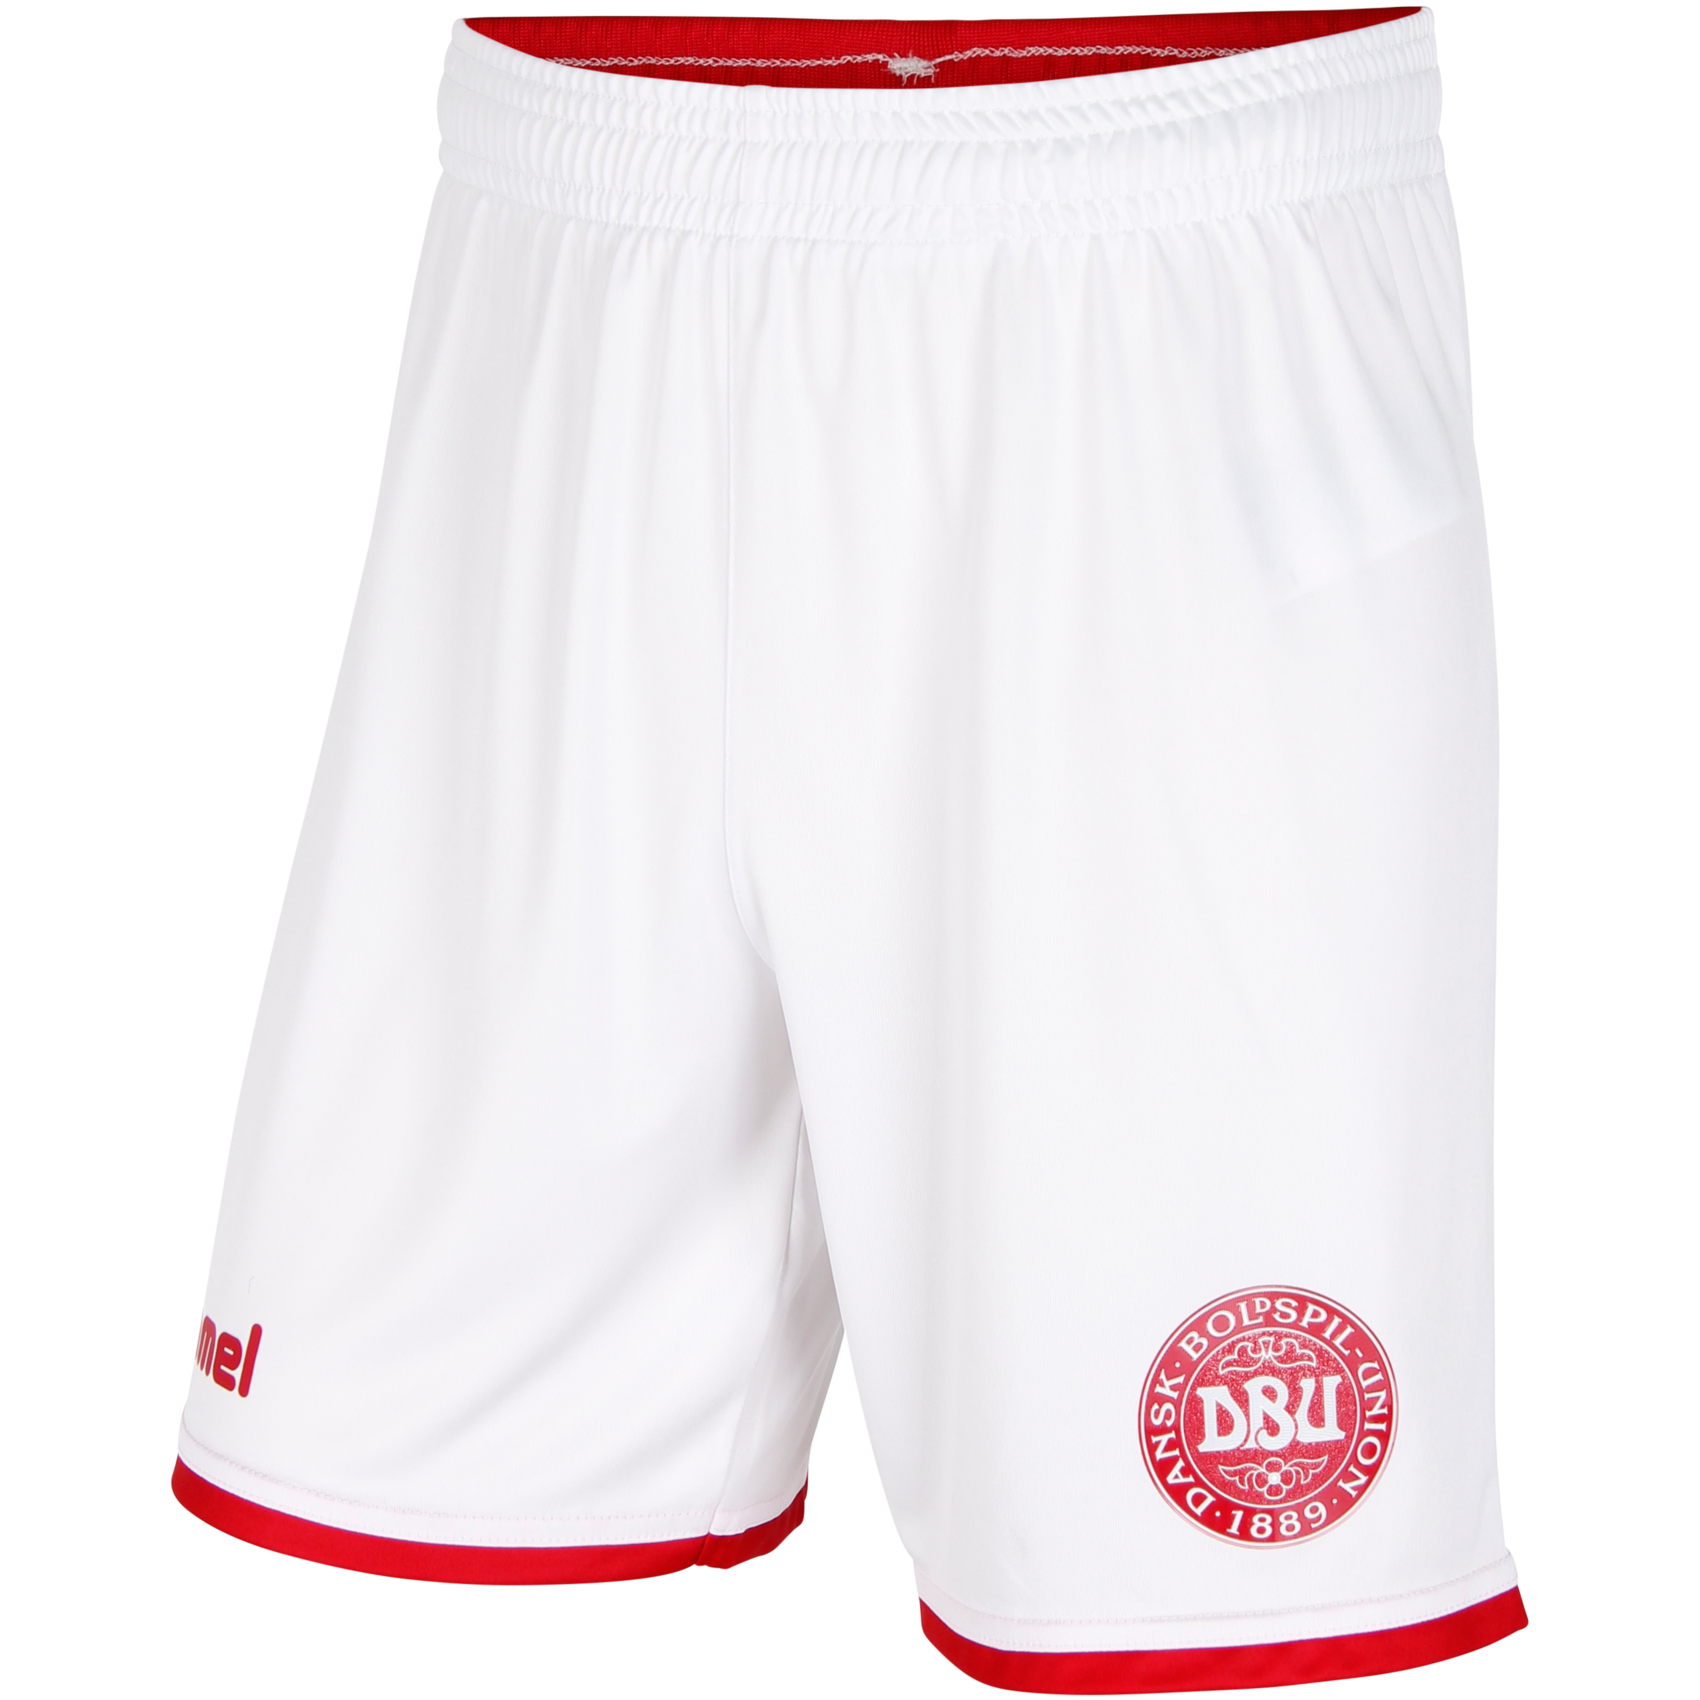 130gm2 100% polyester Micro Interlock, moisturewicking- Elastic waistband with flat poly string- Encased 1x1 contrast rib at center back- Lightweight Engineered DBU badge- Contrast binding at cuff- Printed hummel